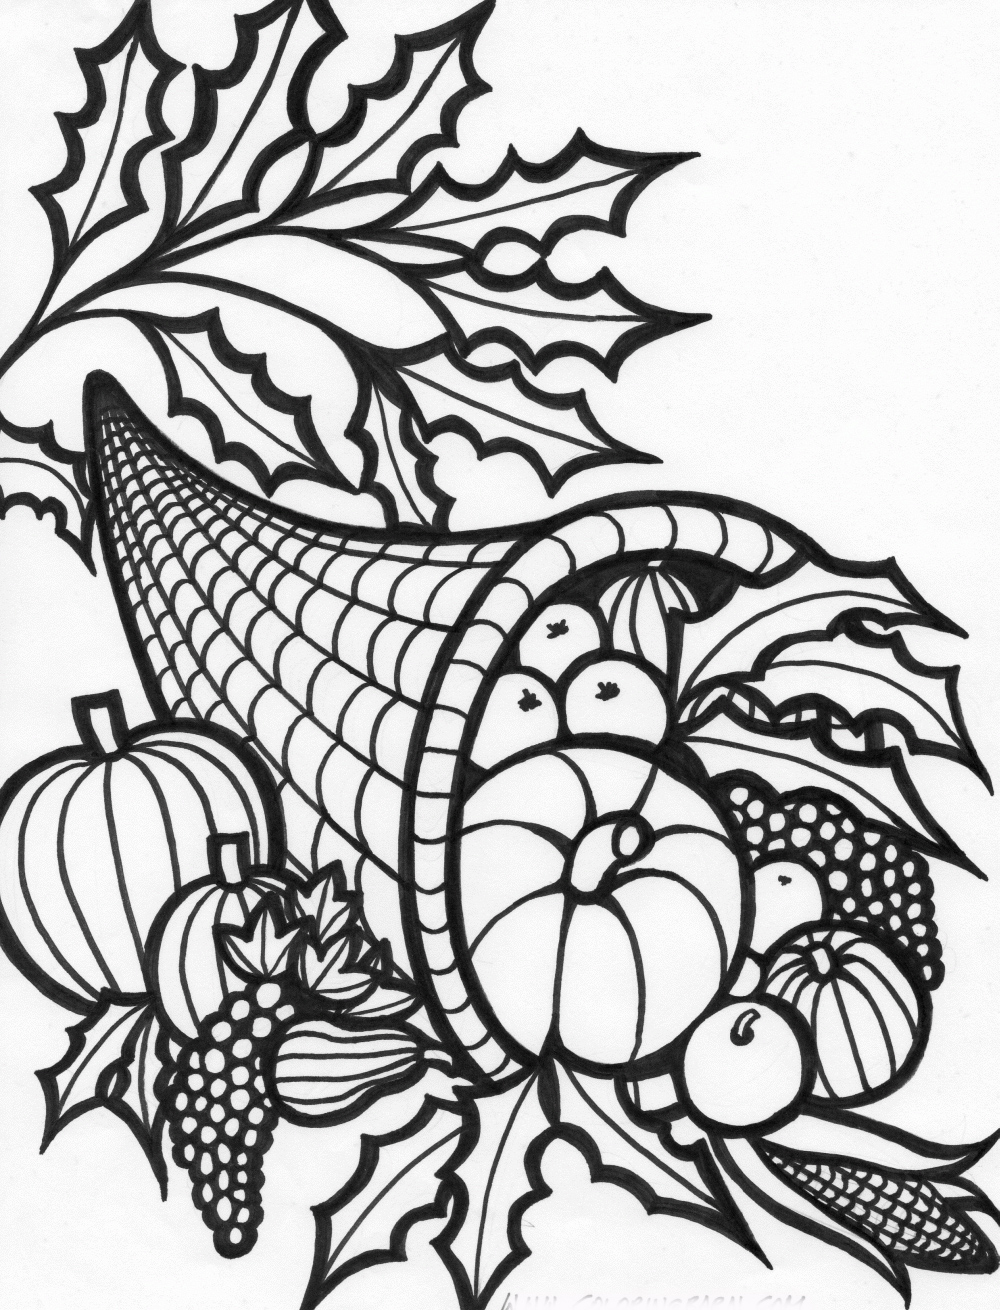 tanksgiving coloring pages - photo#20